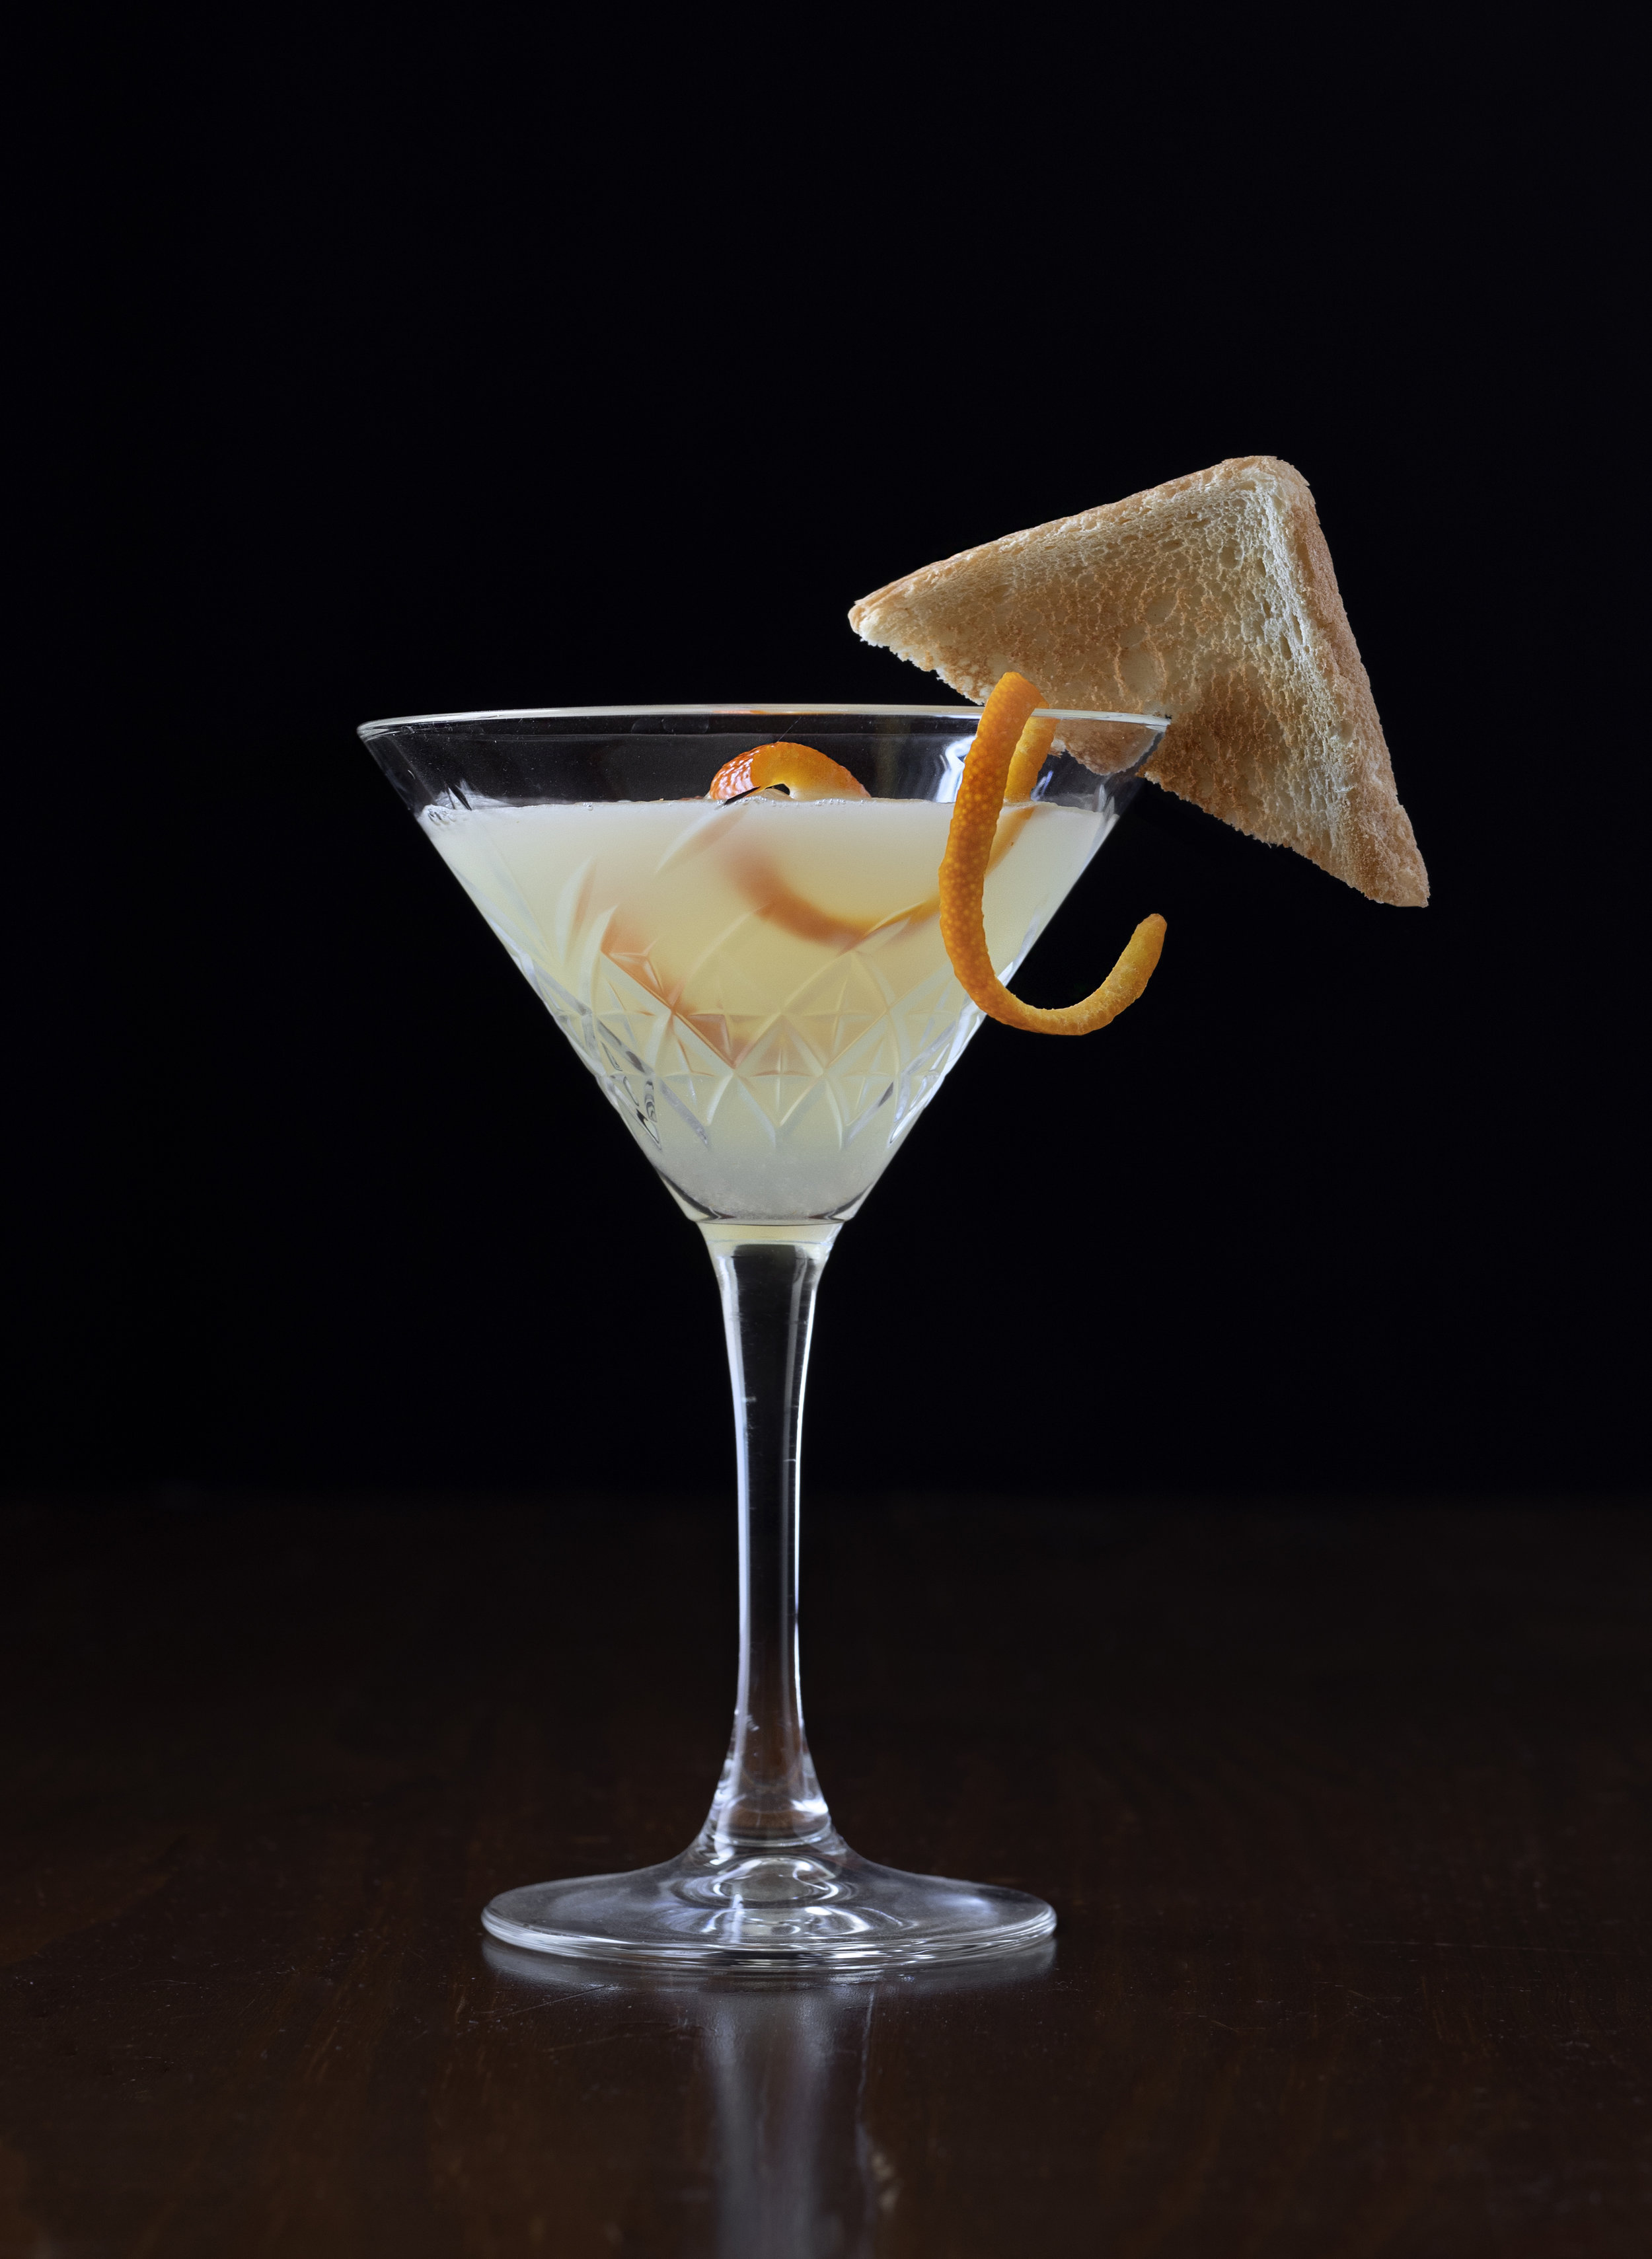 A Breakfast Martini uses a touch of bittersweet orange marmalade to balance the sweet and sour elements.